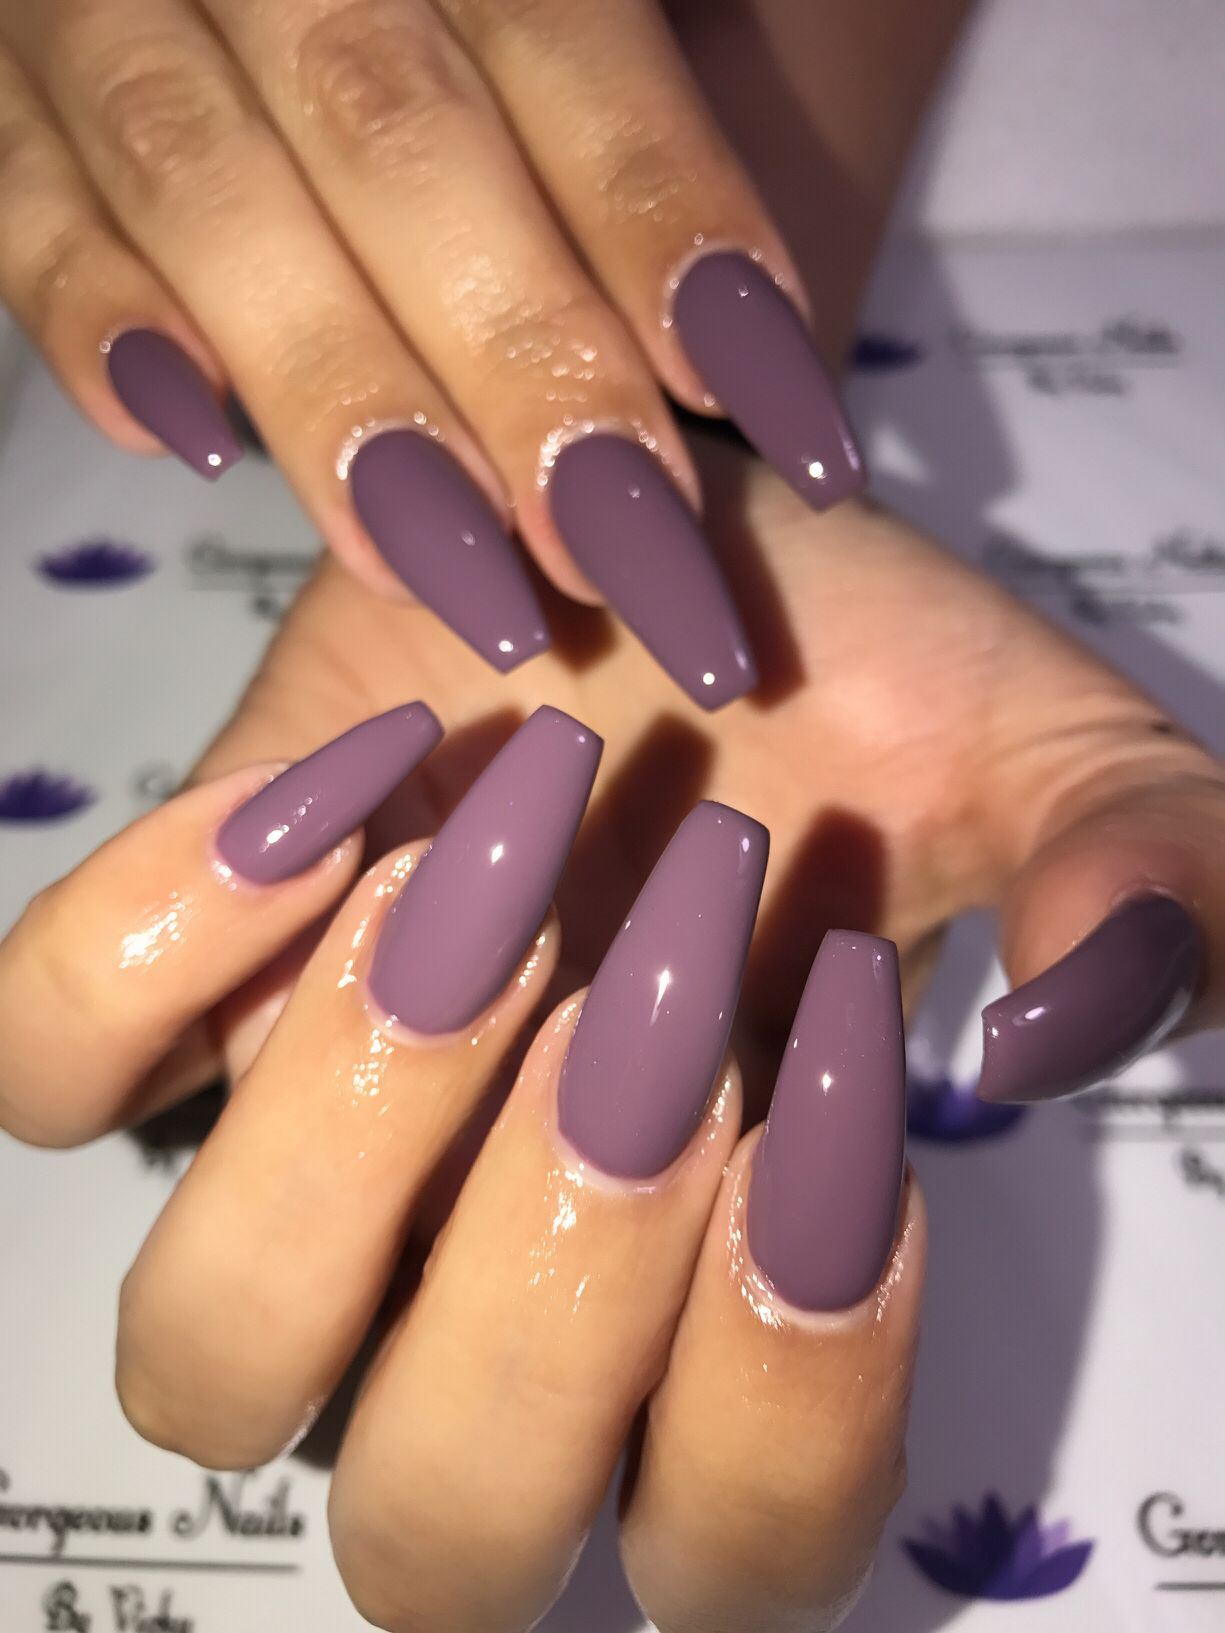 Coffin/ballerina nails shape | Colored Acrylic Nails in ...